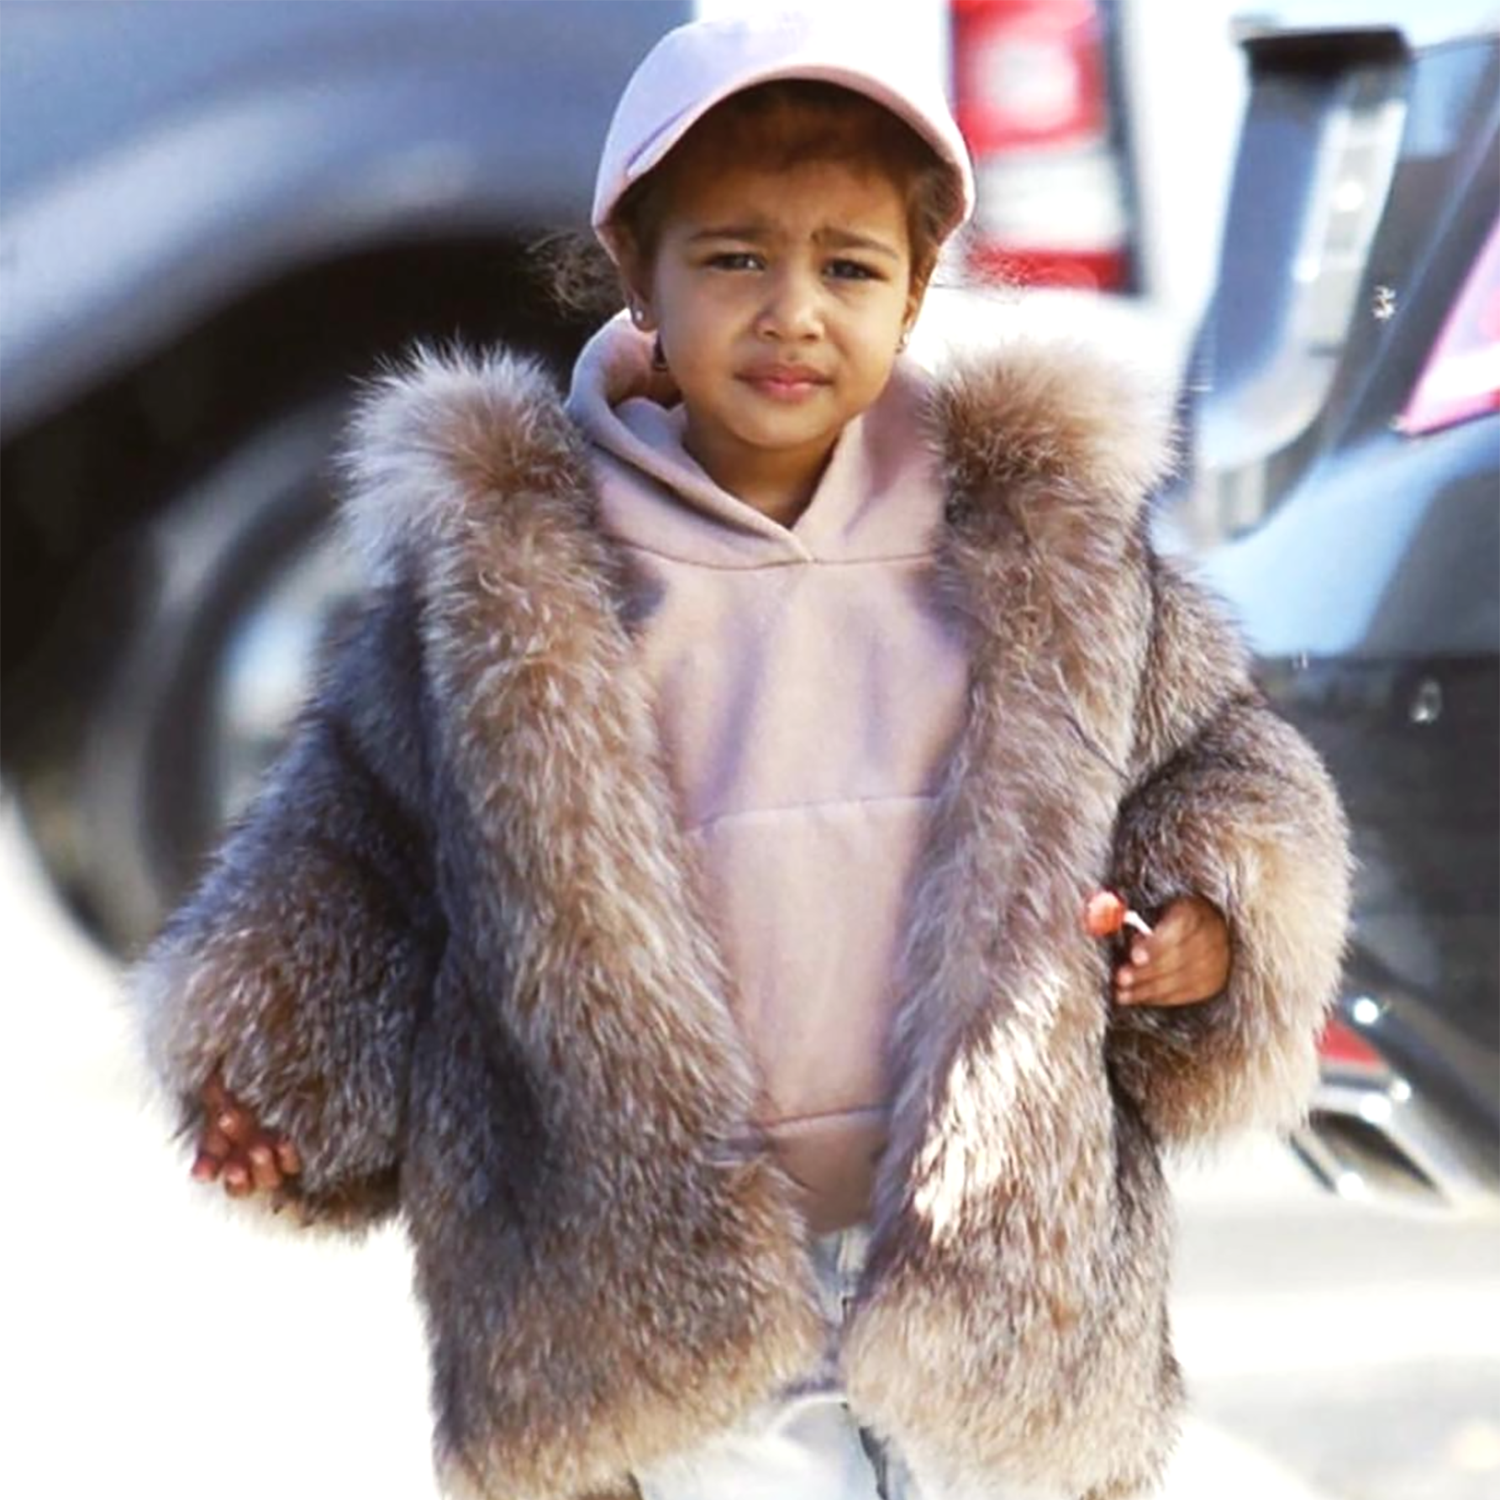 North West is apparently filming a video with YouTube star JoJo Siwa